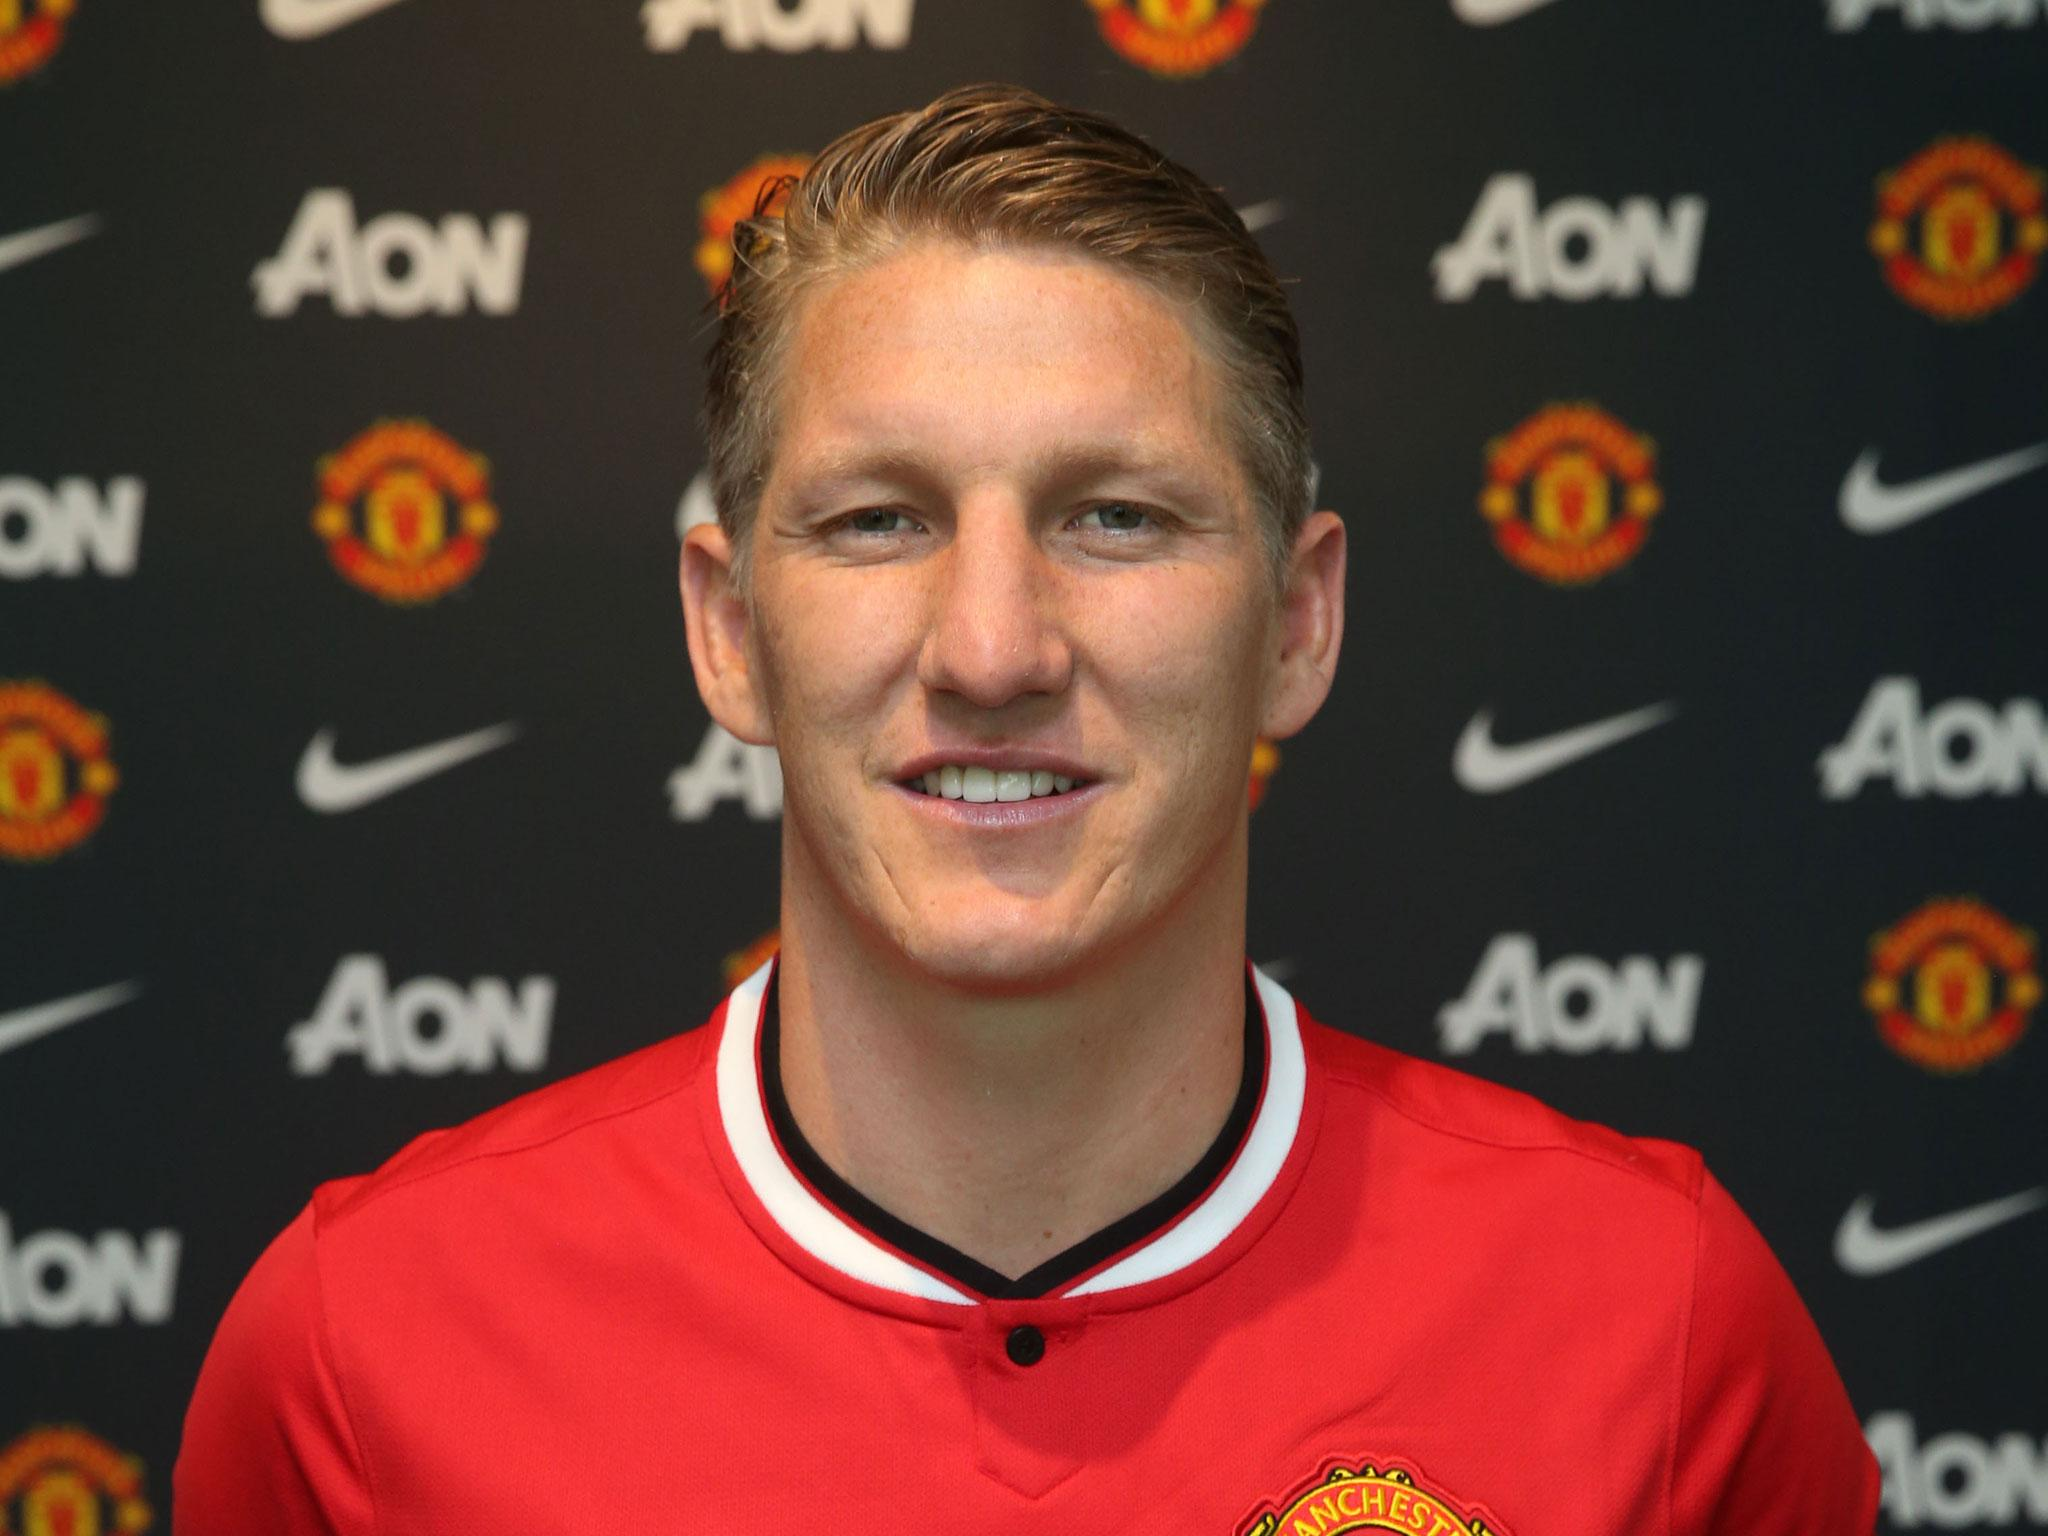 Bastian Schweinsteiger set to be e fourth Louis van Gaal signing